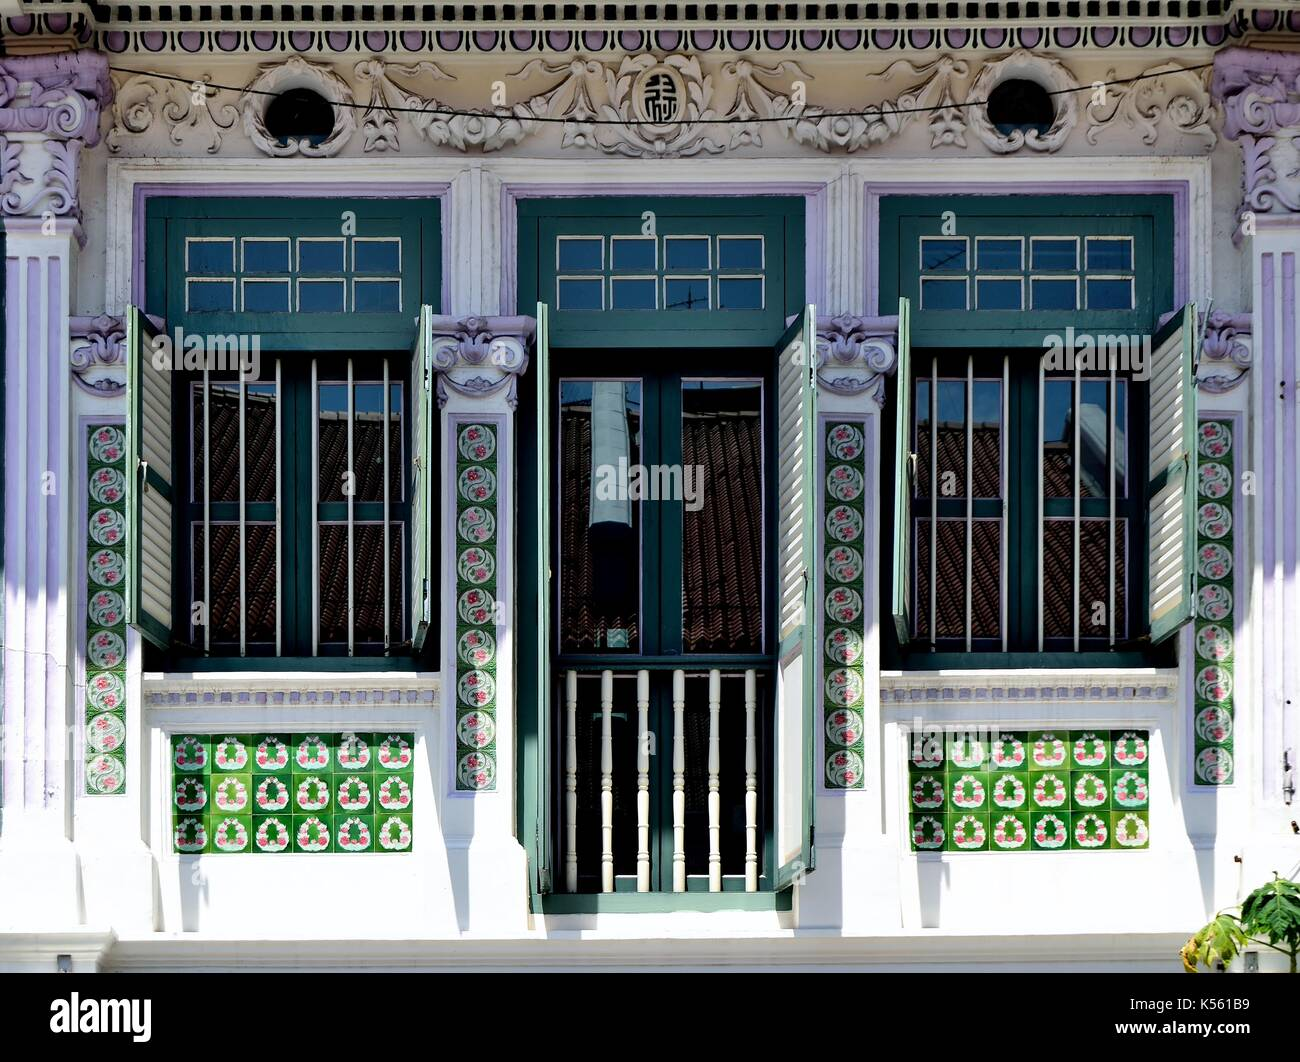 Traditional shop house exterior with green louvered shutters, ornate ...